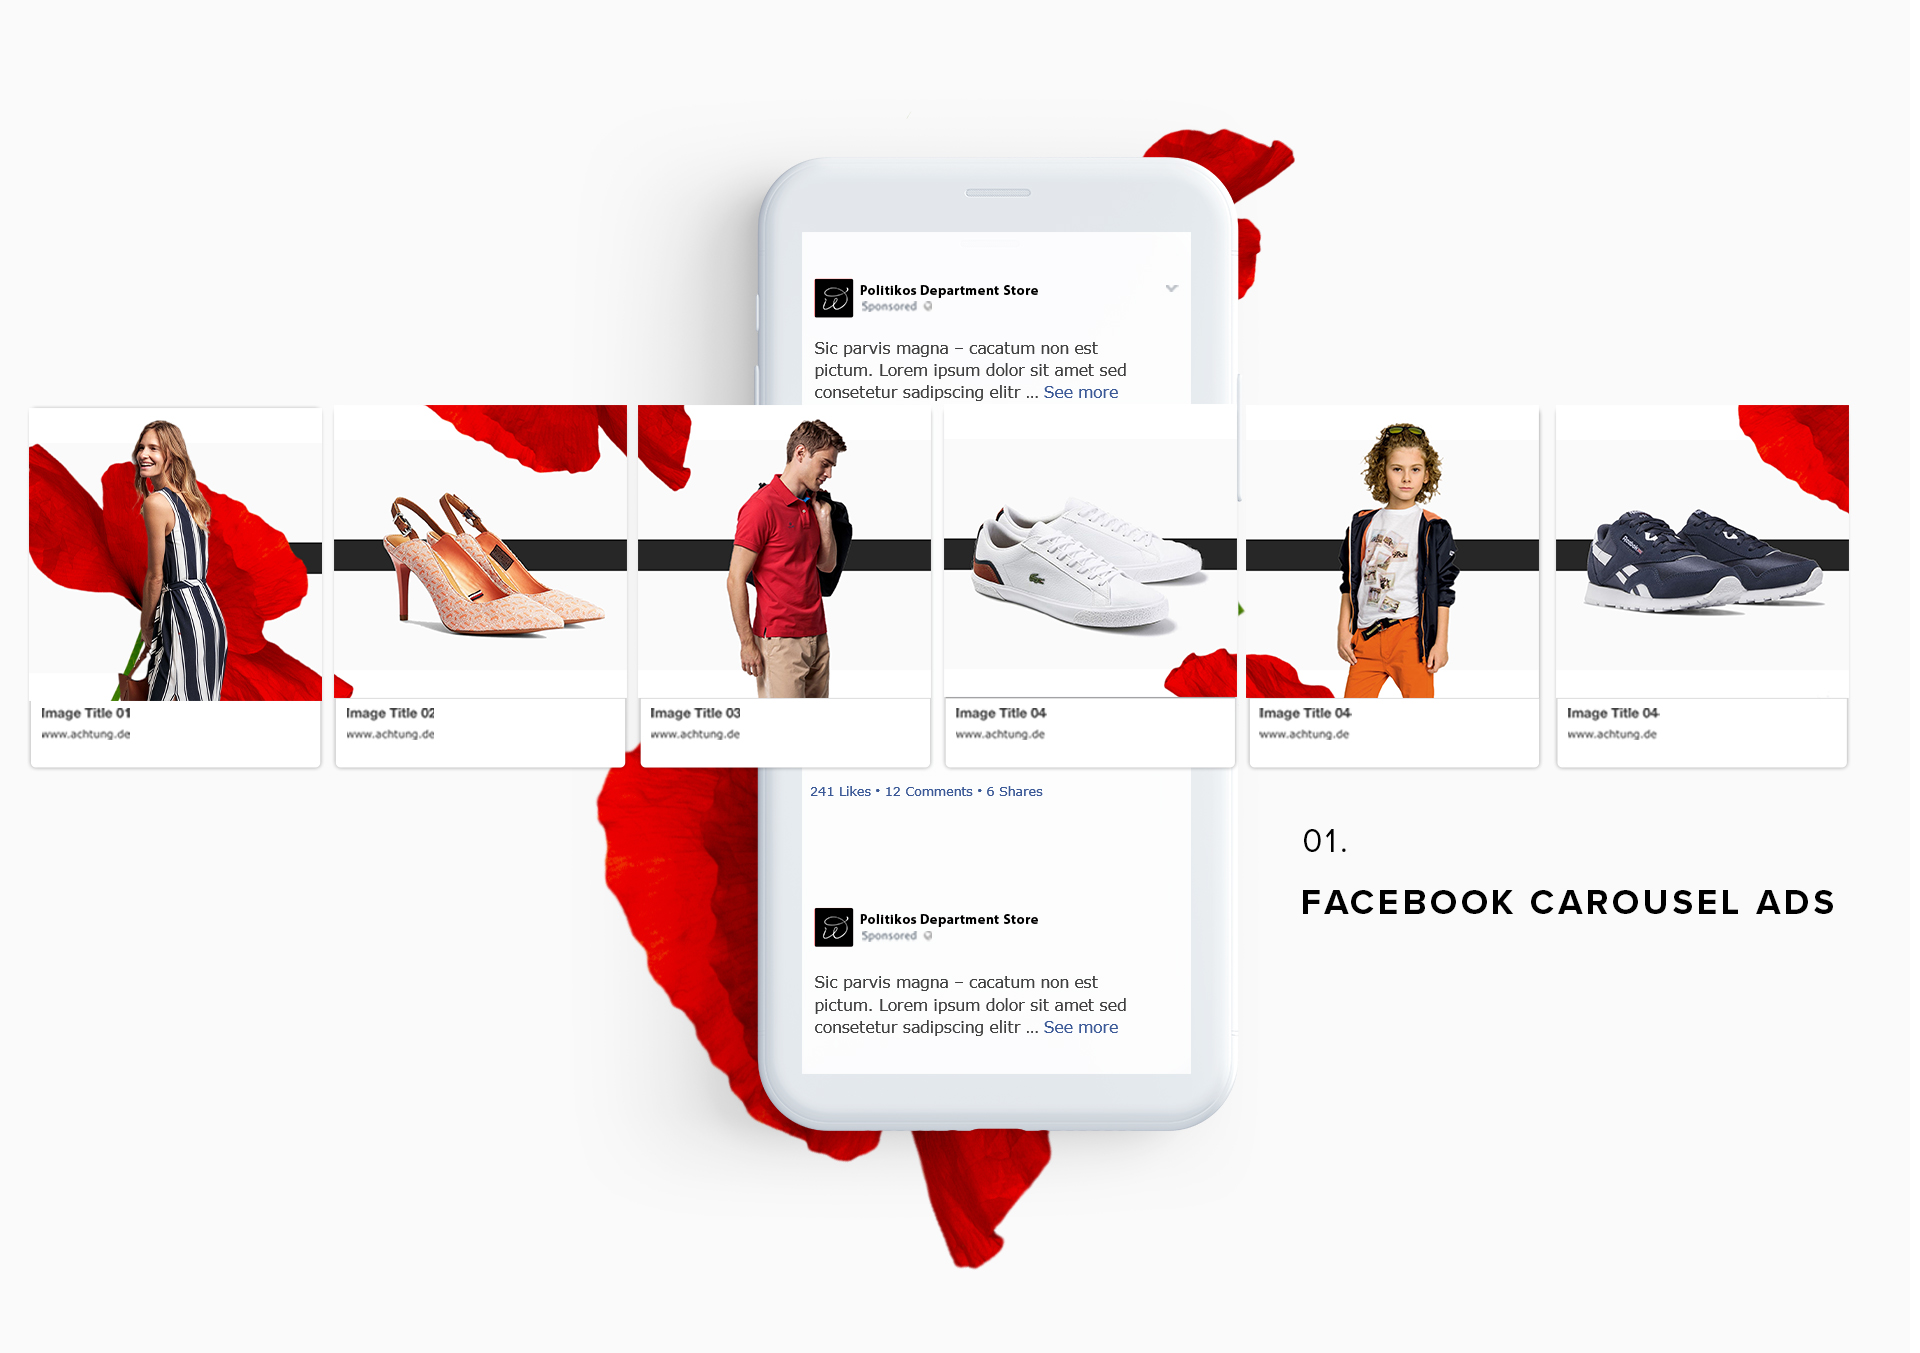 FB CAROUSELS ADS DESIGN (3 projects in 1 case)